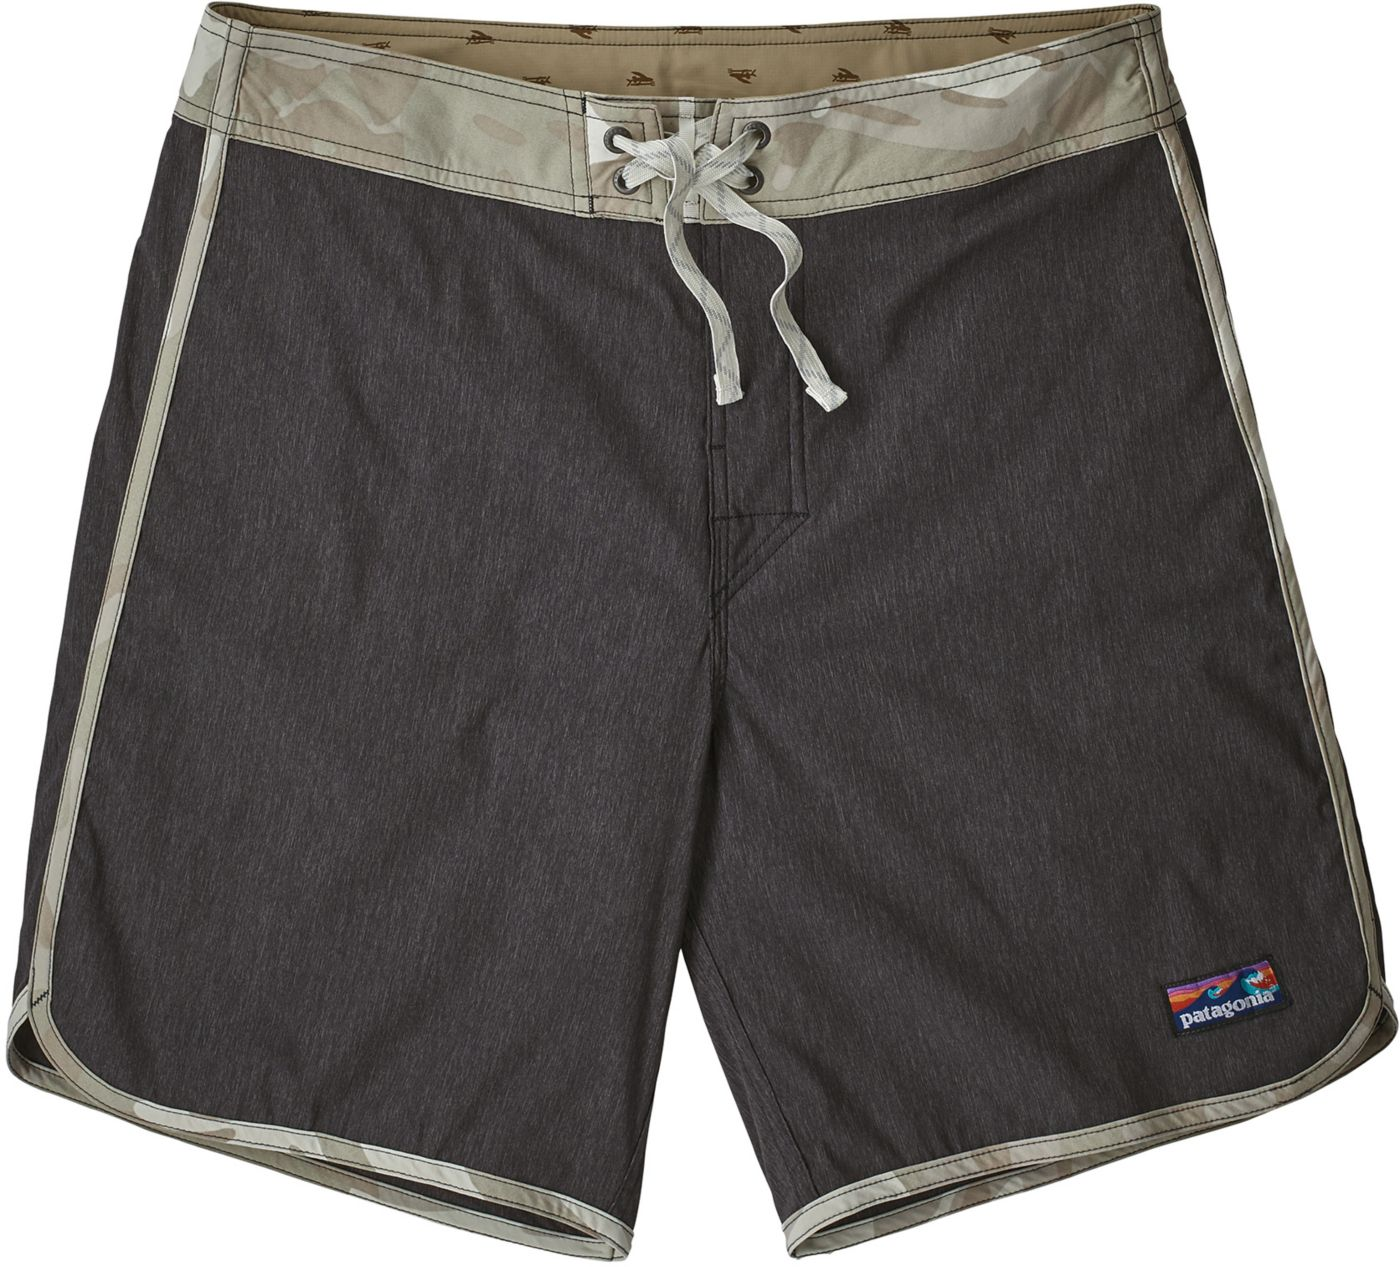 "Patagonia Men's Scallop Hem Stretch Wavefarer 18"" Board Shorts"